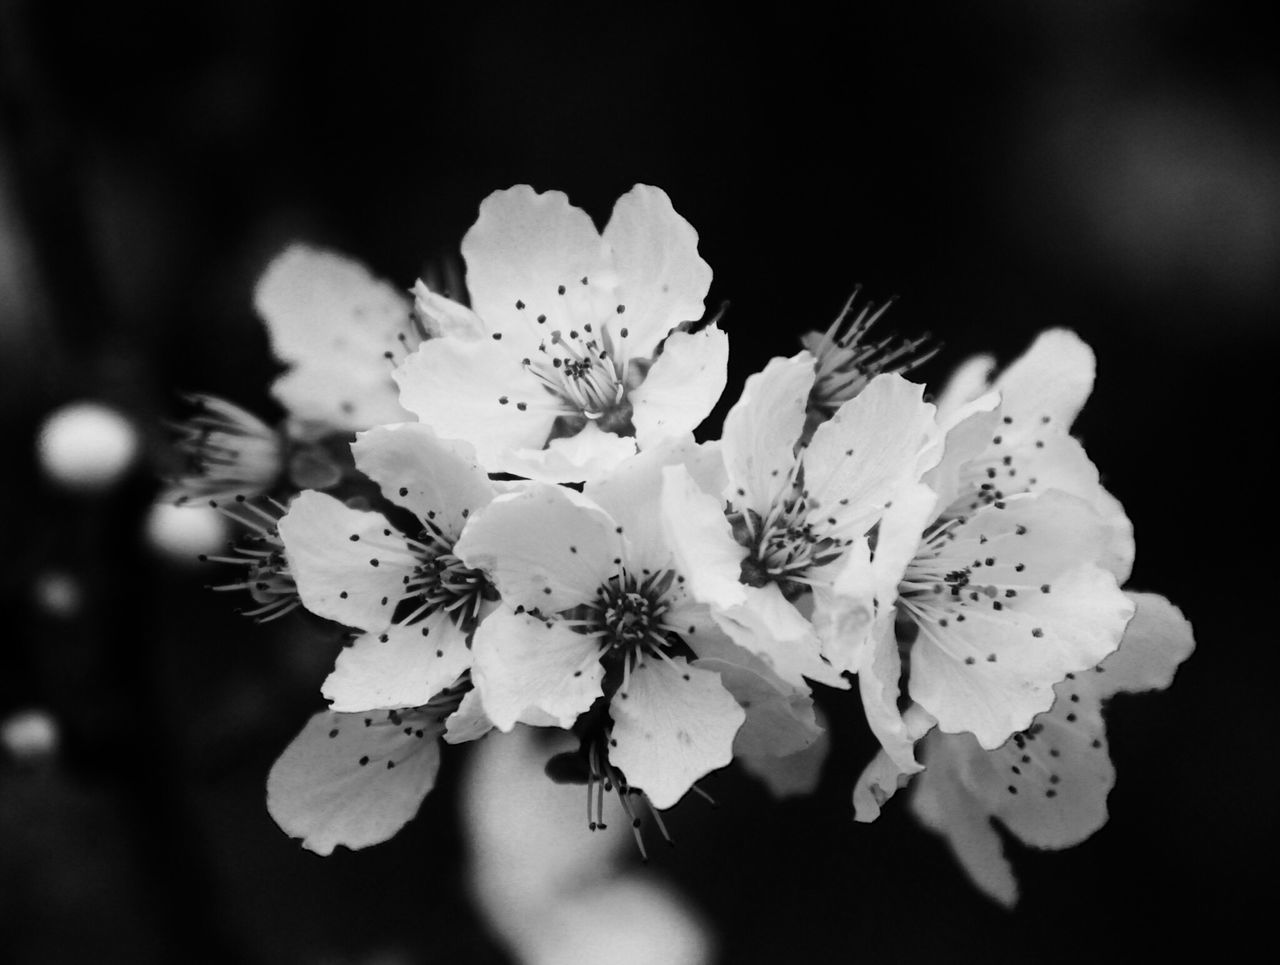 flower, fragility, beauty in nature, blossom, petal, growth, nature, freshness, flower head, botany, pollen, springtime, apple blossom, close-up, stamen, white color, no people, day, outdoors, tree, branch